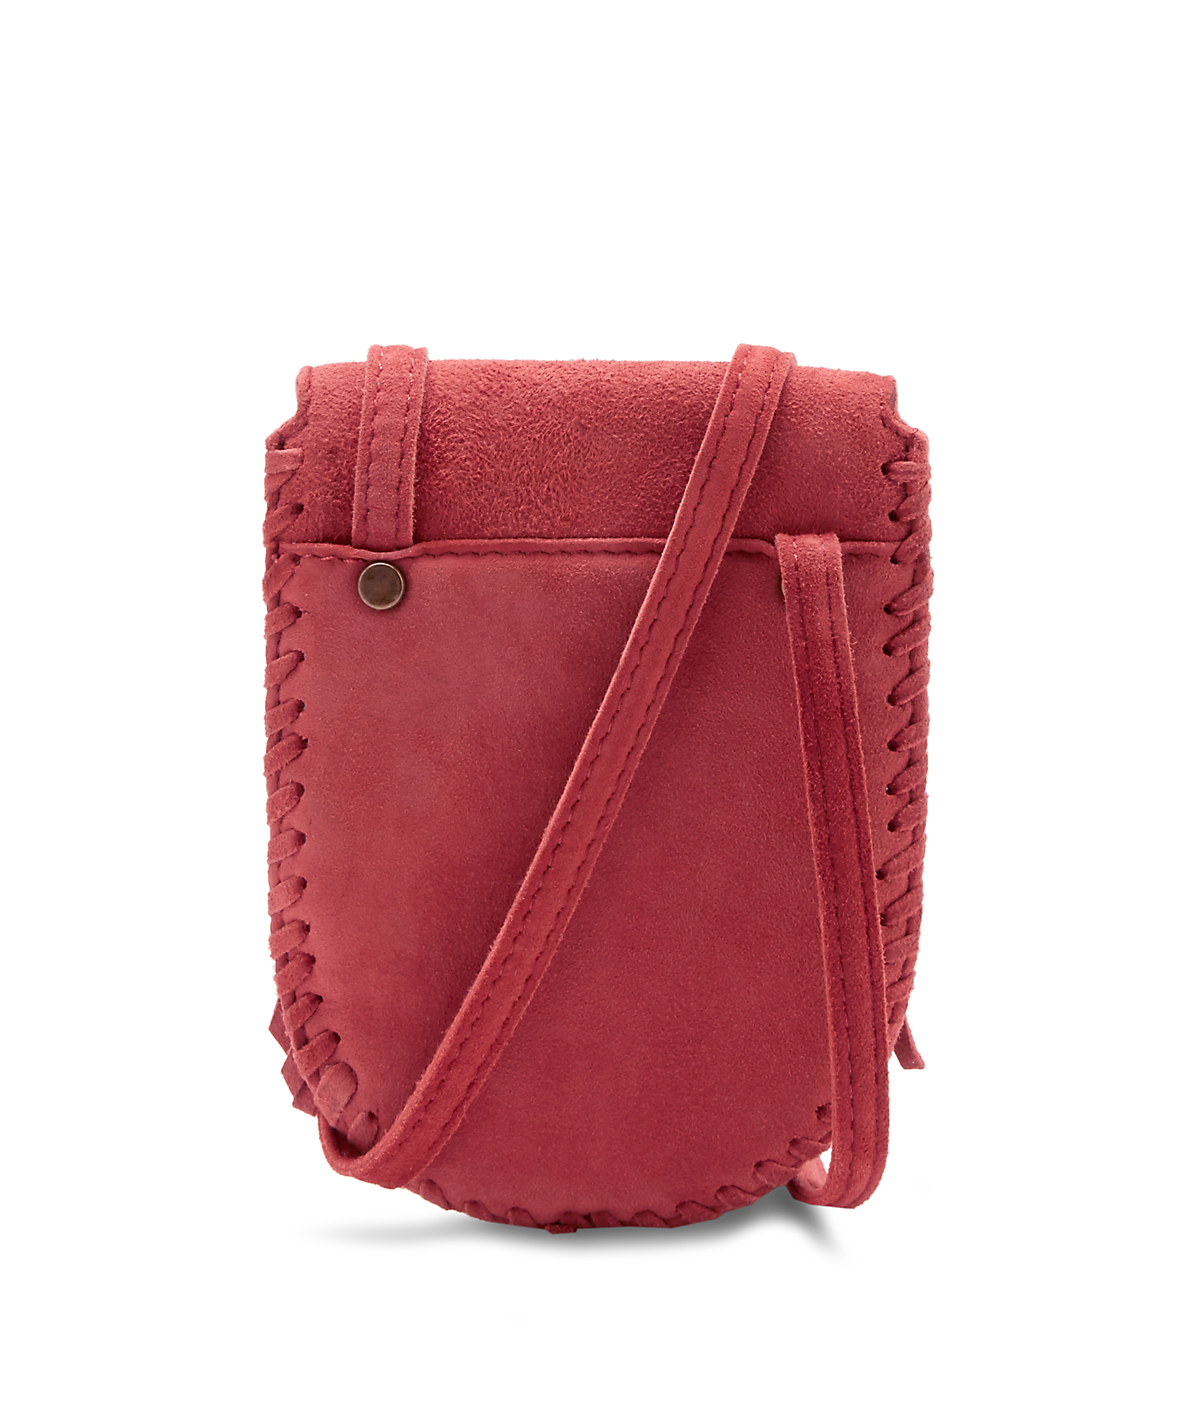 Ethel cross-body bag from liebeskind